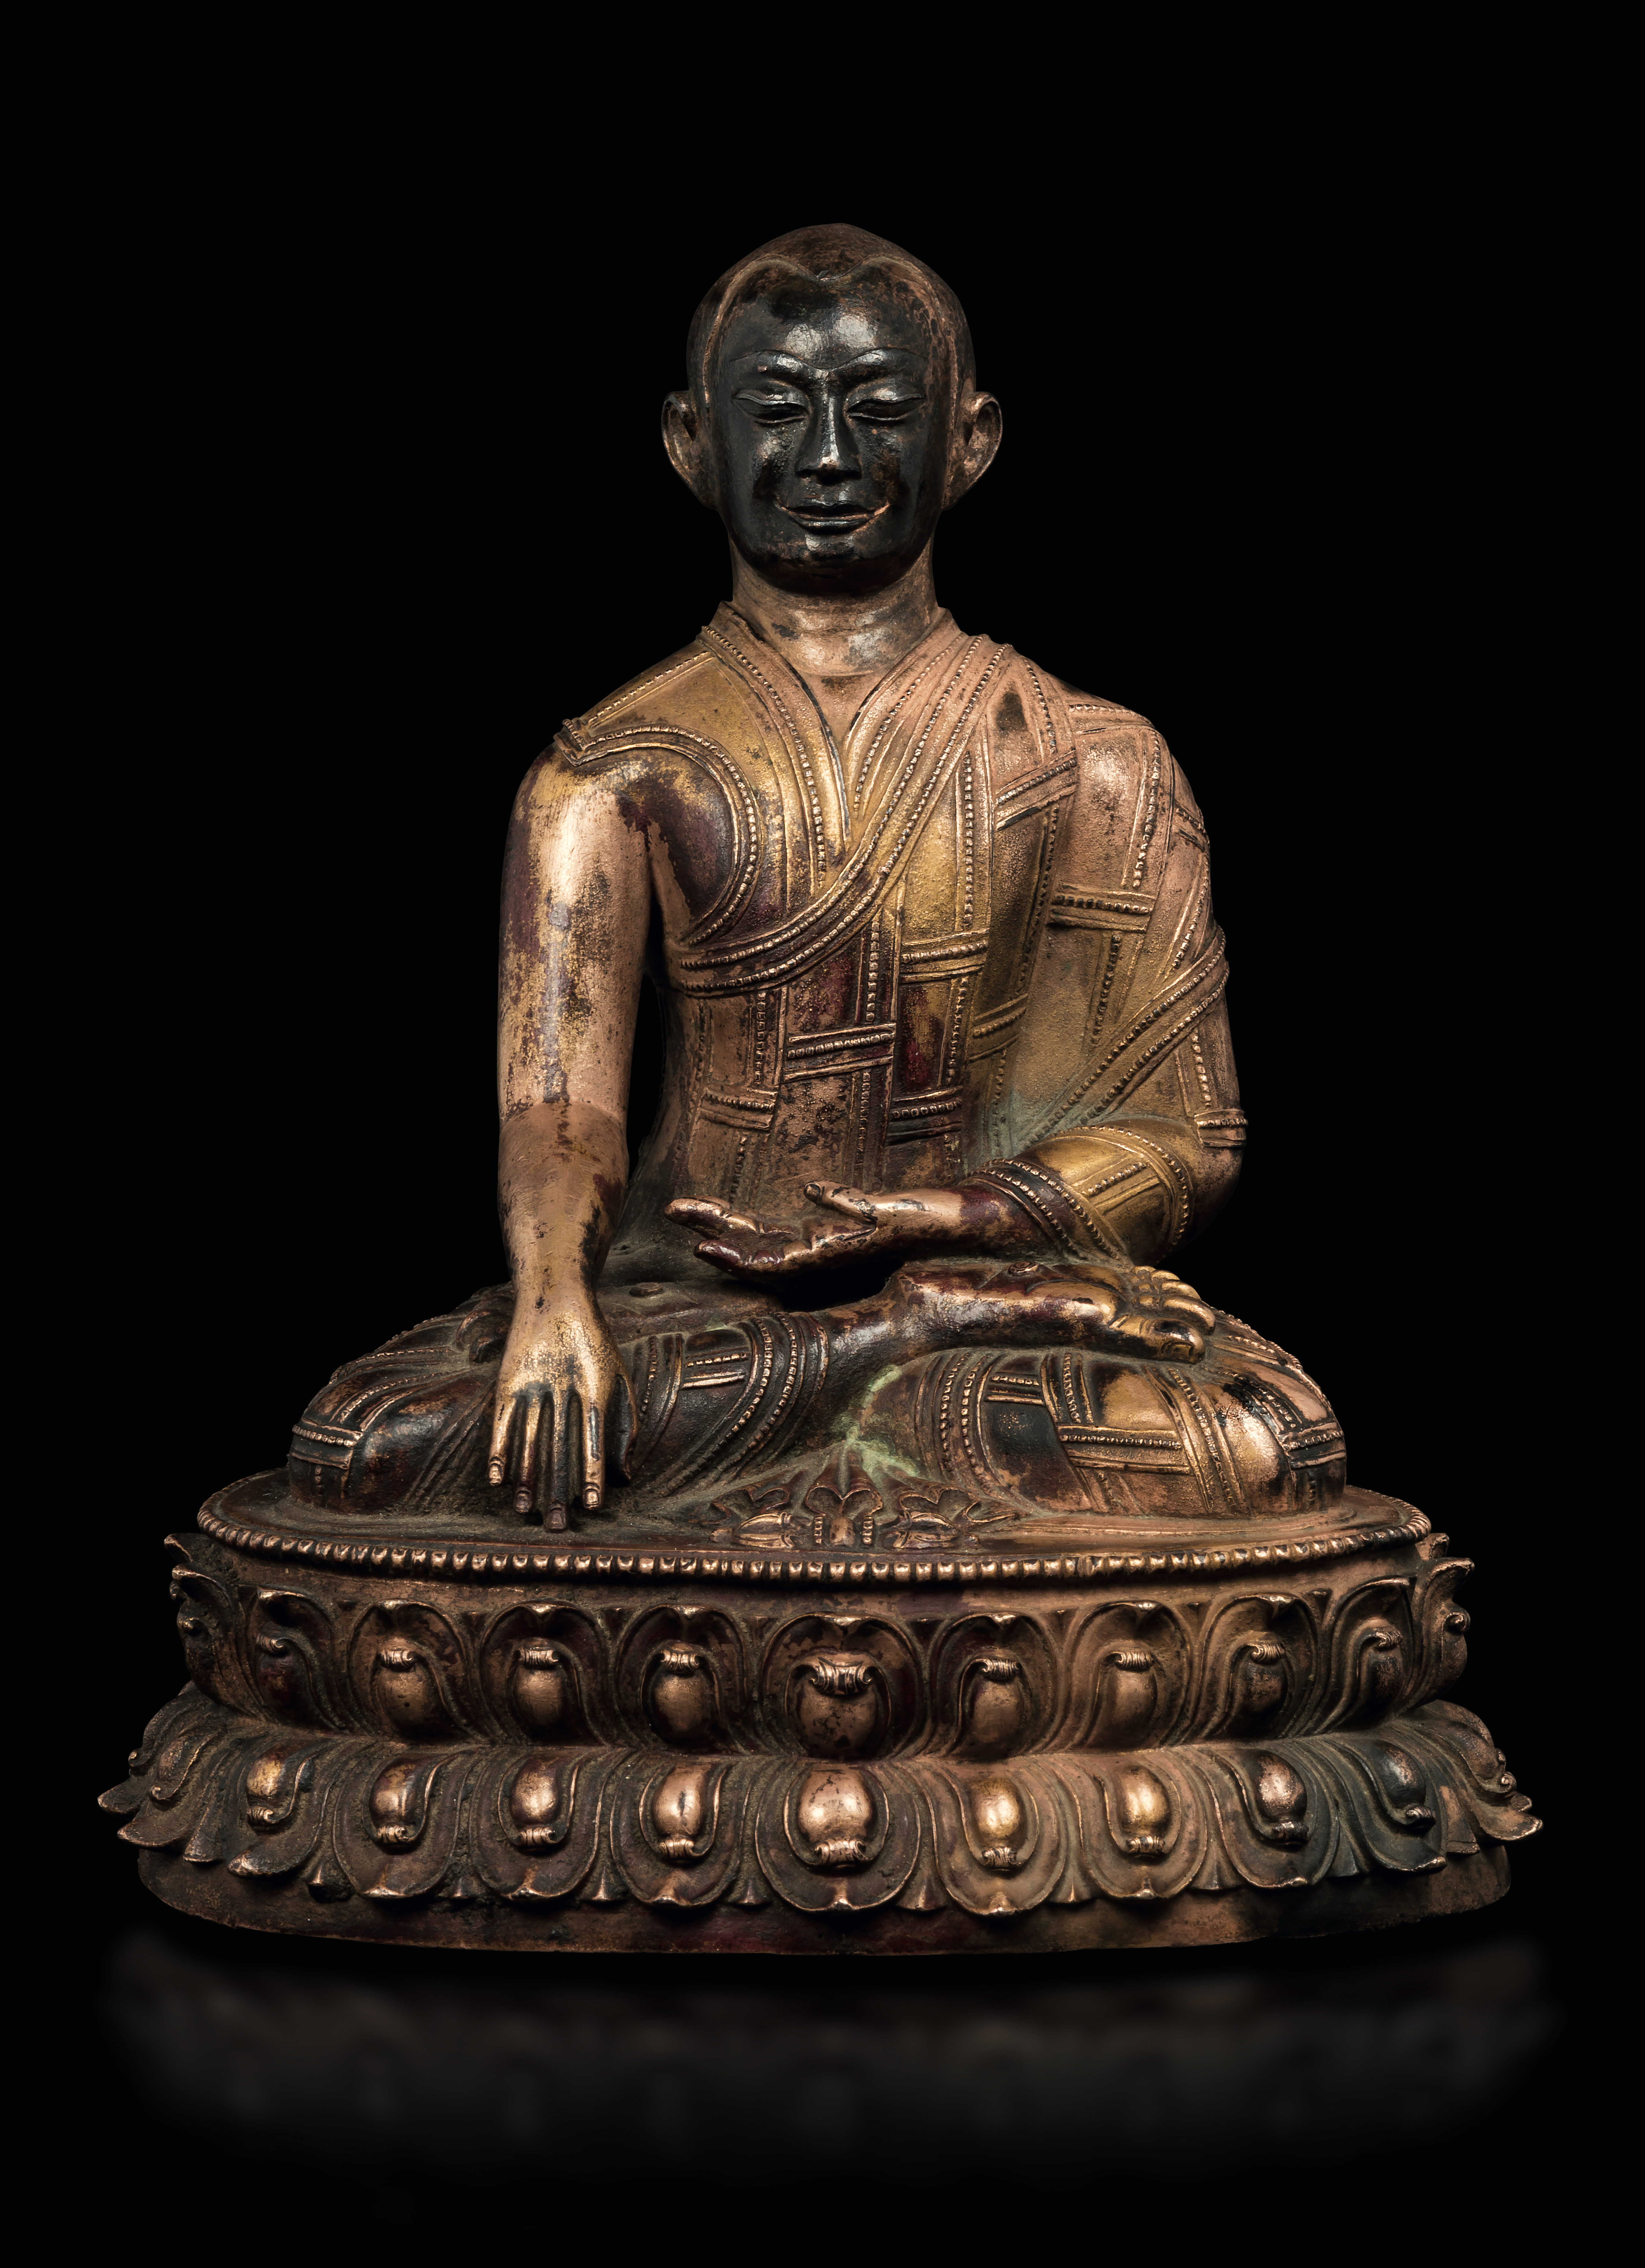 An important imperial figure of Lama seated on a double lotus flower in gilt bronze, Tibet, 13th century. Courtesy Cambi.